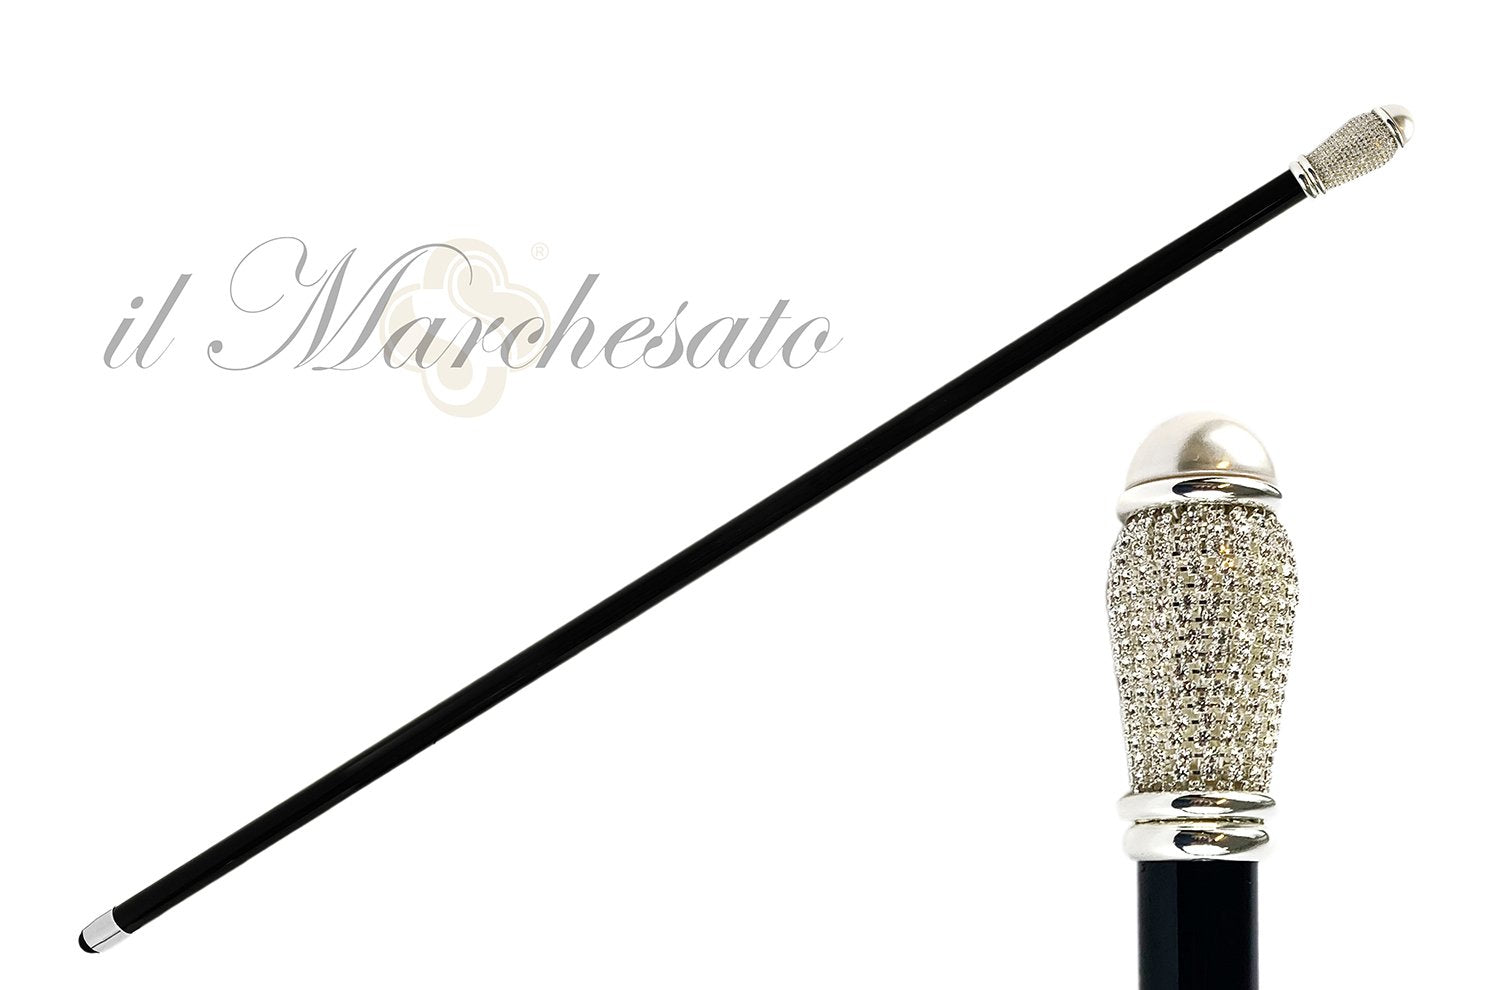 Evening Cane with Crystals and Pearl - IL MARCHESATO LUXURY UMBRELLAS, CANES AND SHOEHORNS